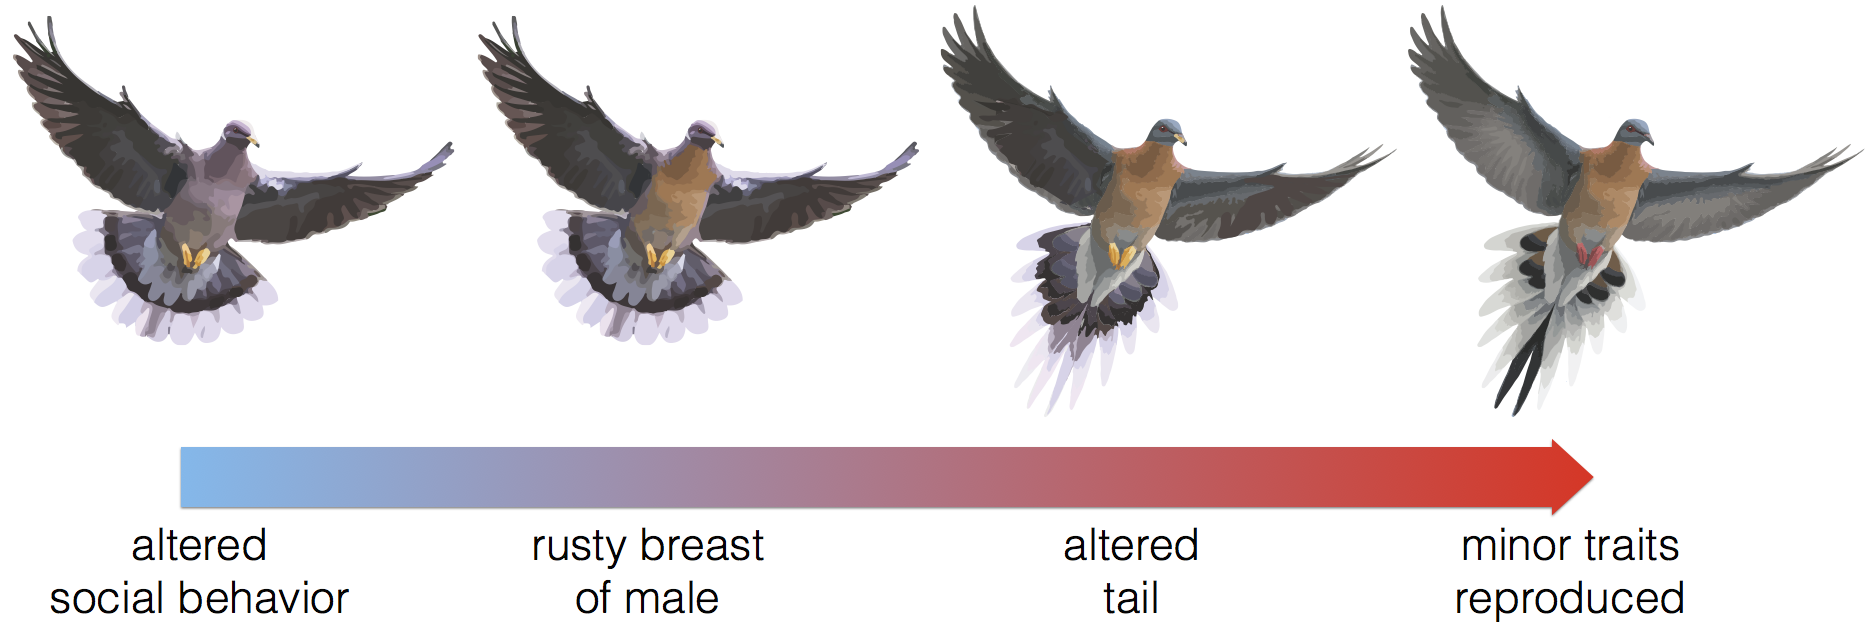 Passenger Pigeon images used in this diagram were modified from Tim Hough's original artwork